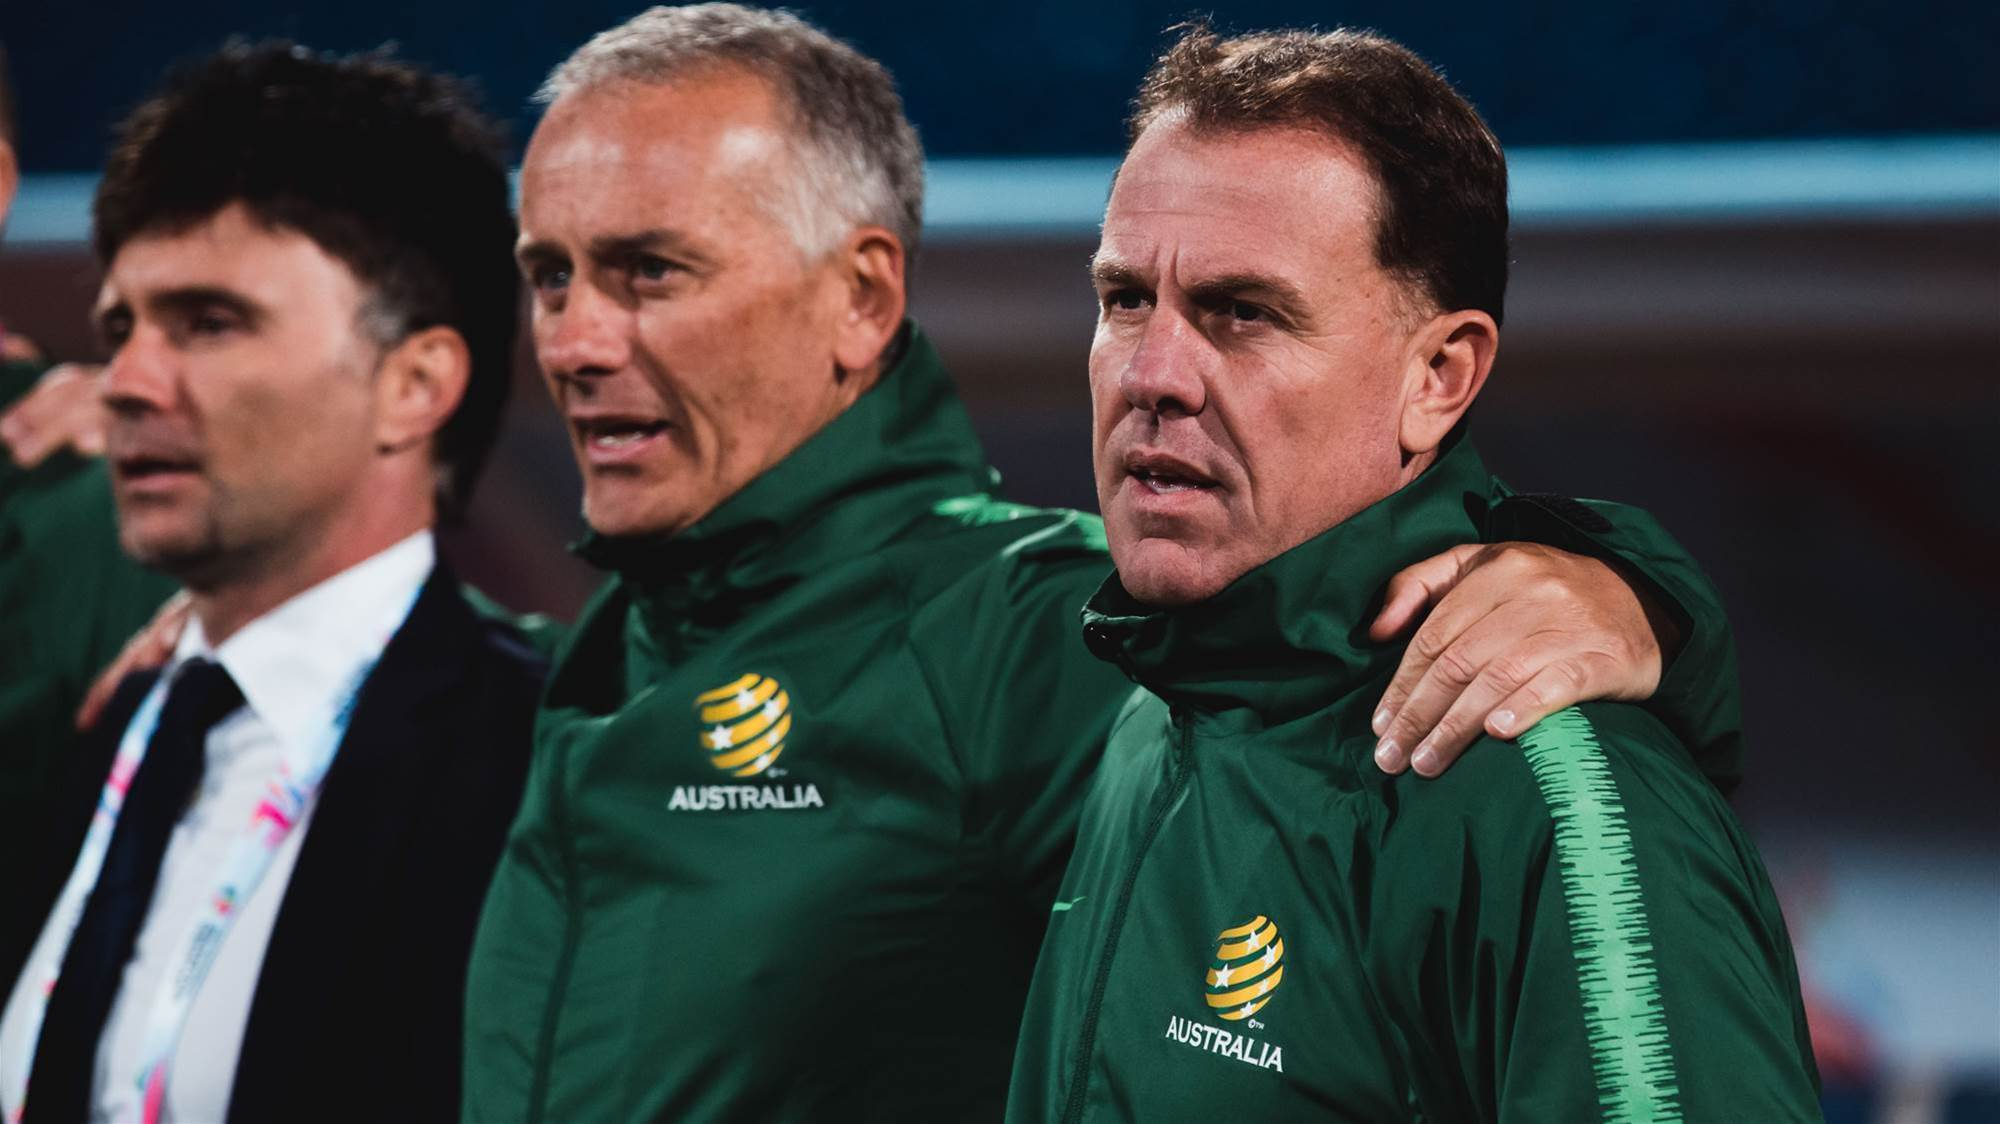 Stajcic on World Cup: Matildas can beat anyone